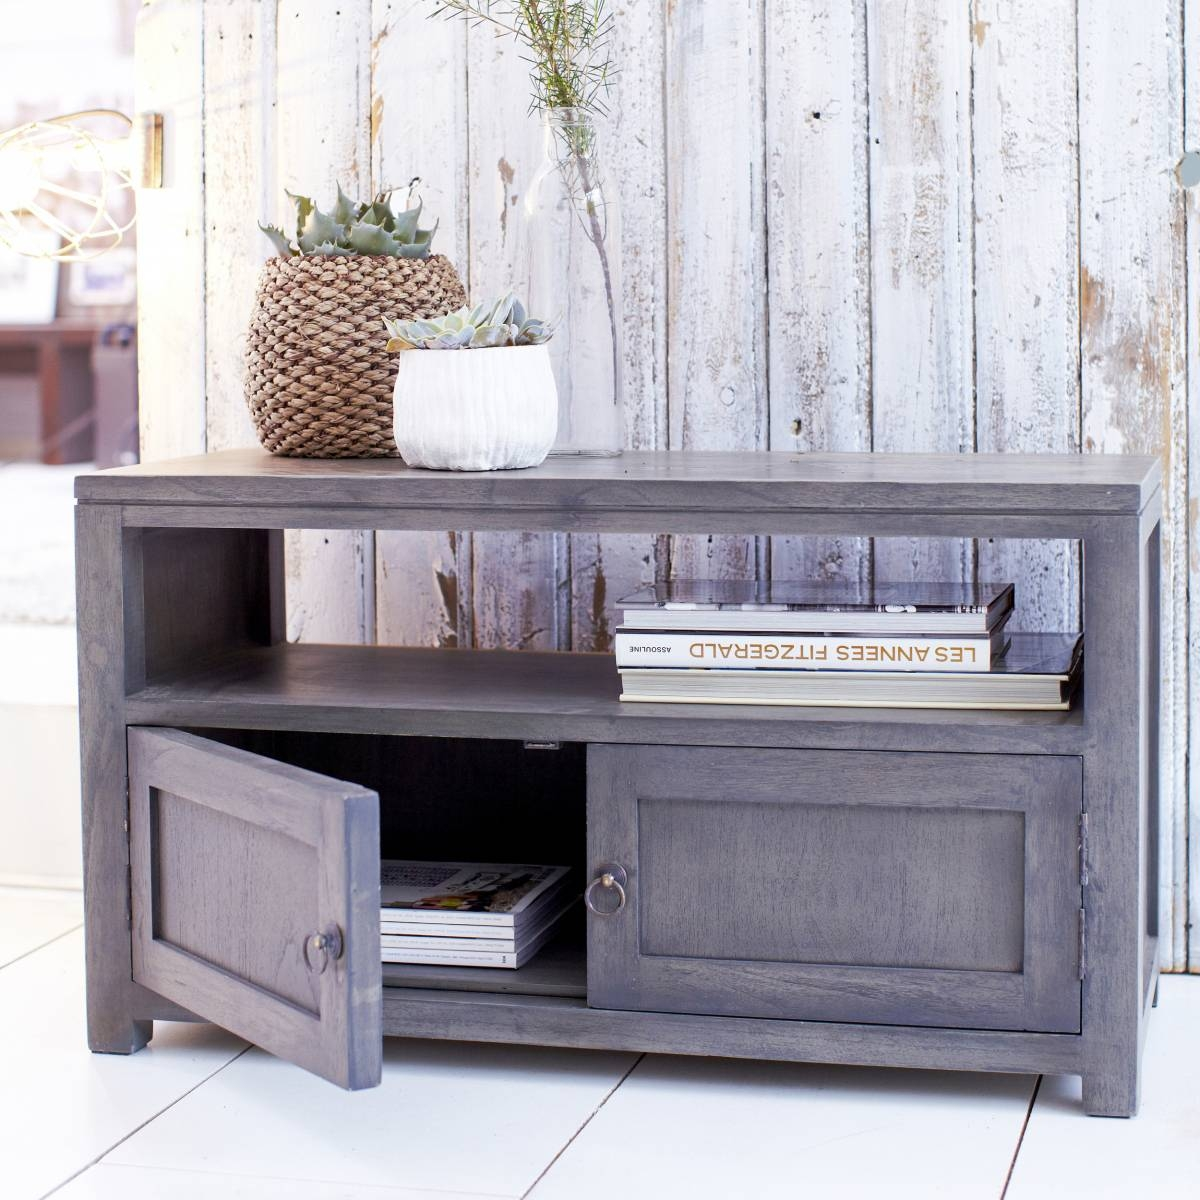 Solid Grey Tv Stand : How To Make Grey Tv Stand – Indoor & Outdoor for Grey Wood Tv Stands (Image 6 of 15)